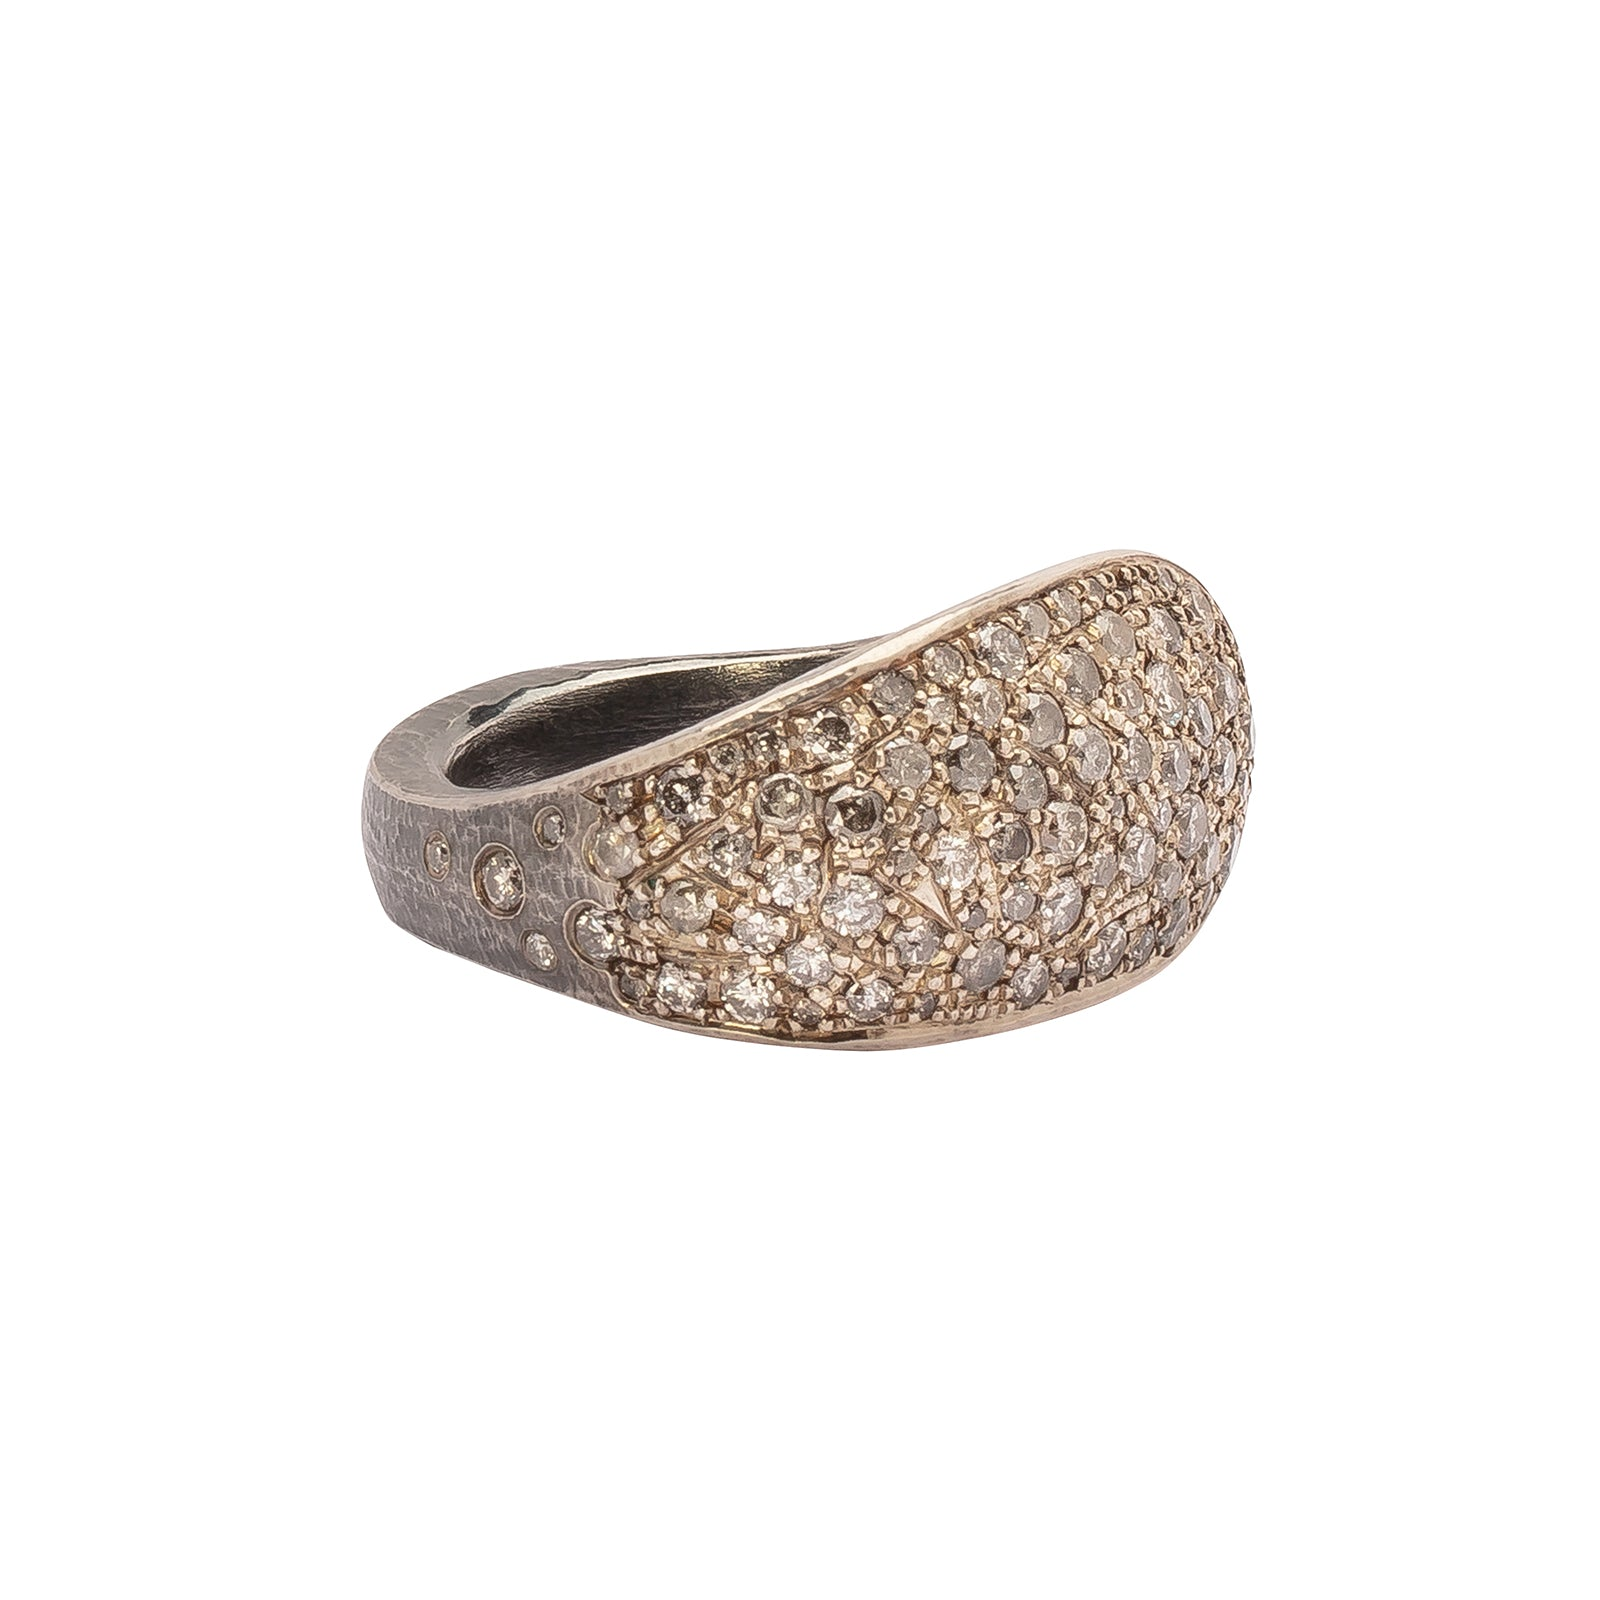 Atelier Zobel Statement Ring - Salt & Pepper Diamond - Rings - Broken English Jewelry